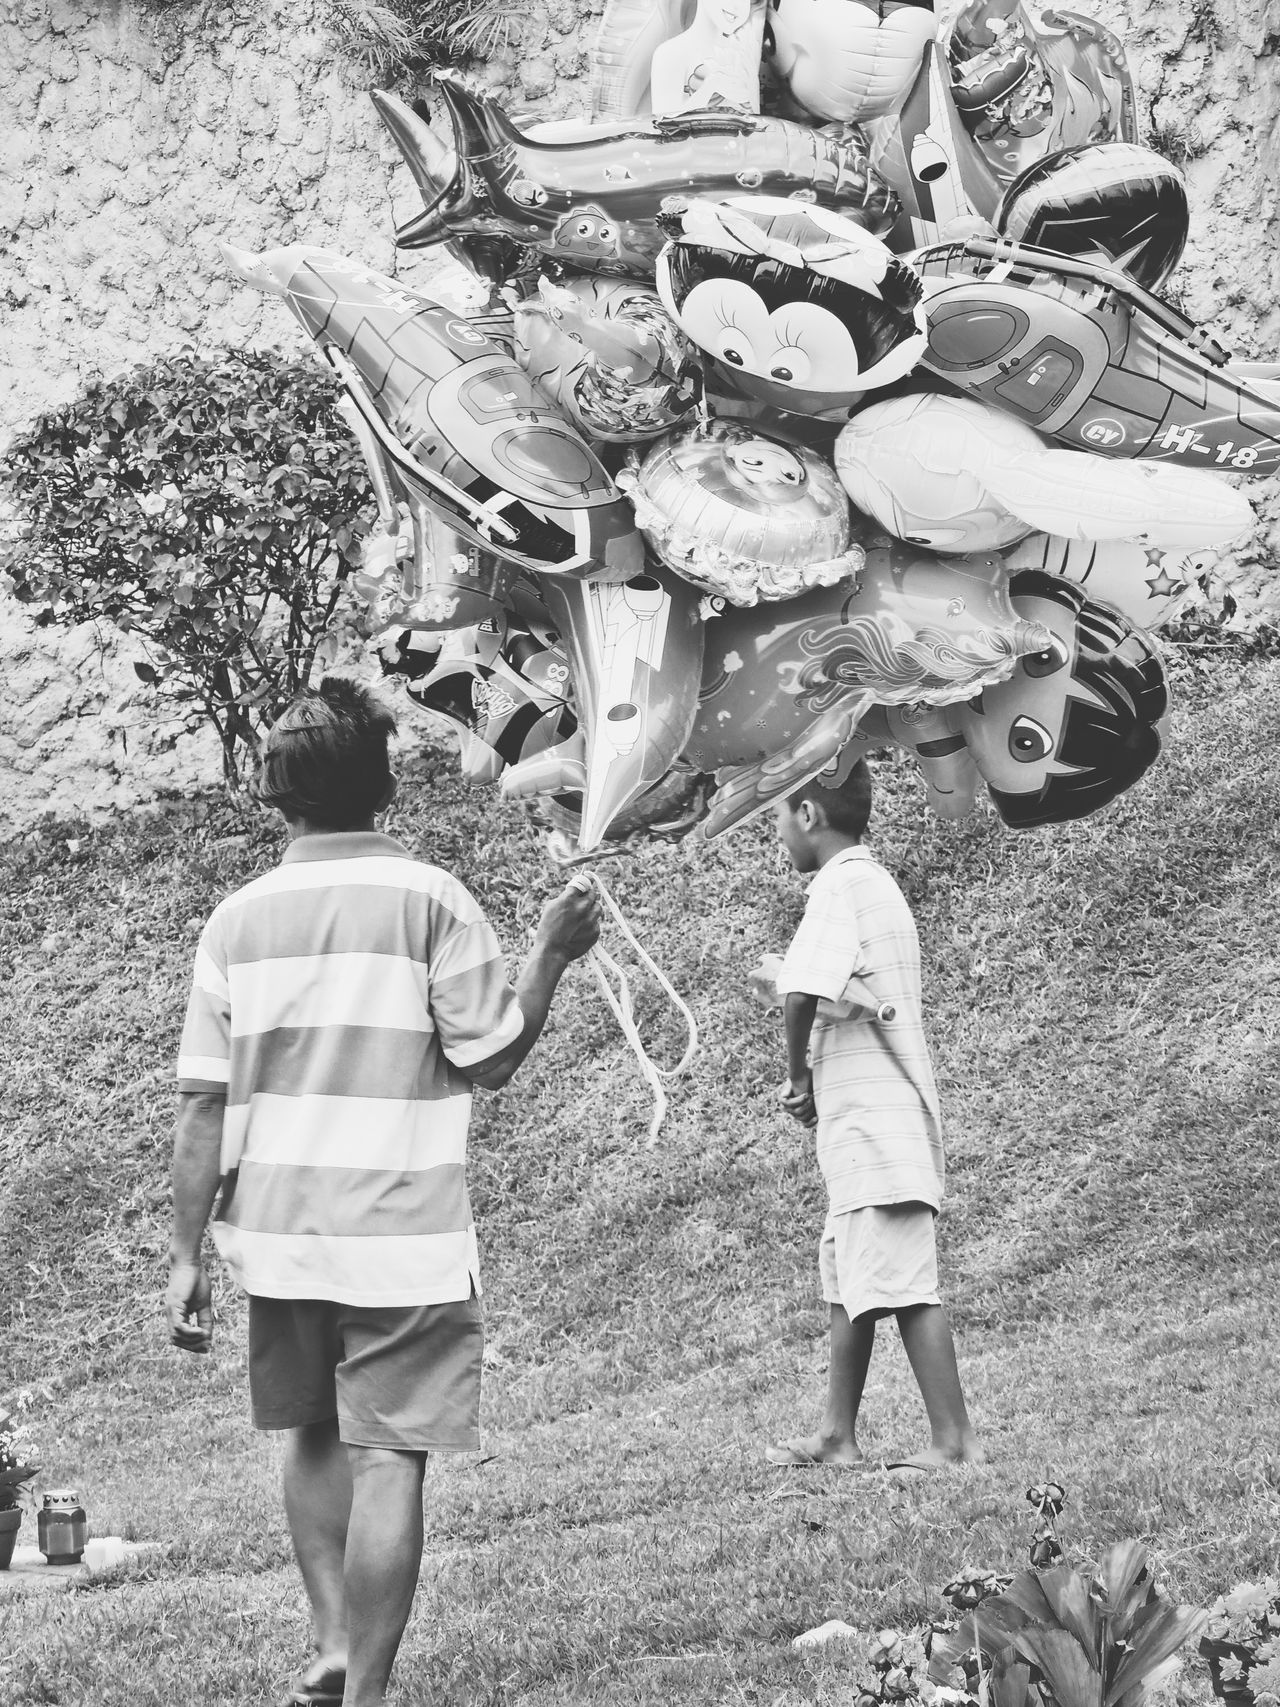 Selling balloons to kids roaming around the cemetery Global EyeEm Adventure - Philippines AllSaintsDay The Photojournalist - 2015 EyeEm Awards The Street Photographer - 2015 EyeEm Awards B&w Street Photography